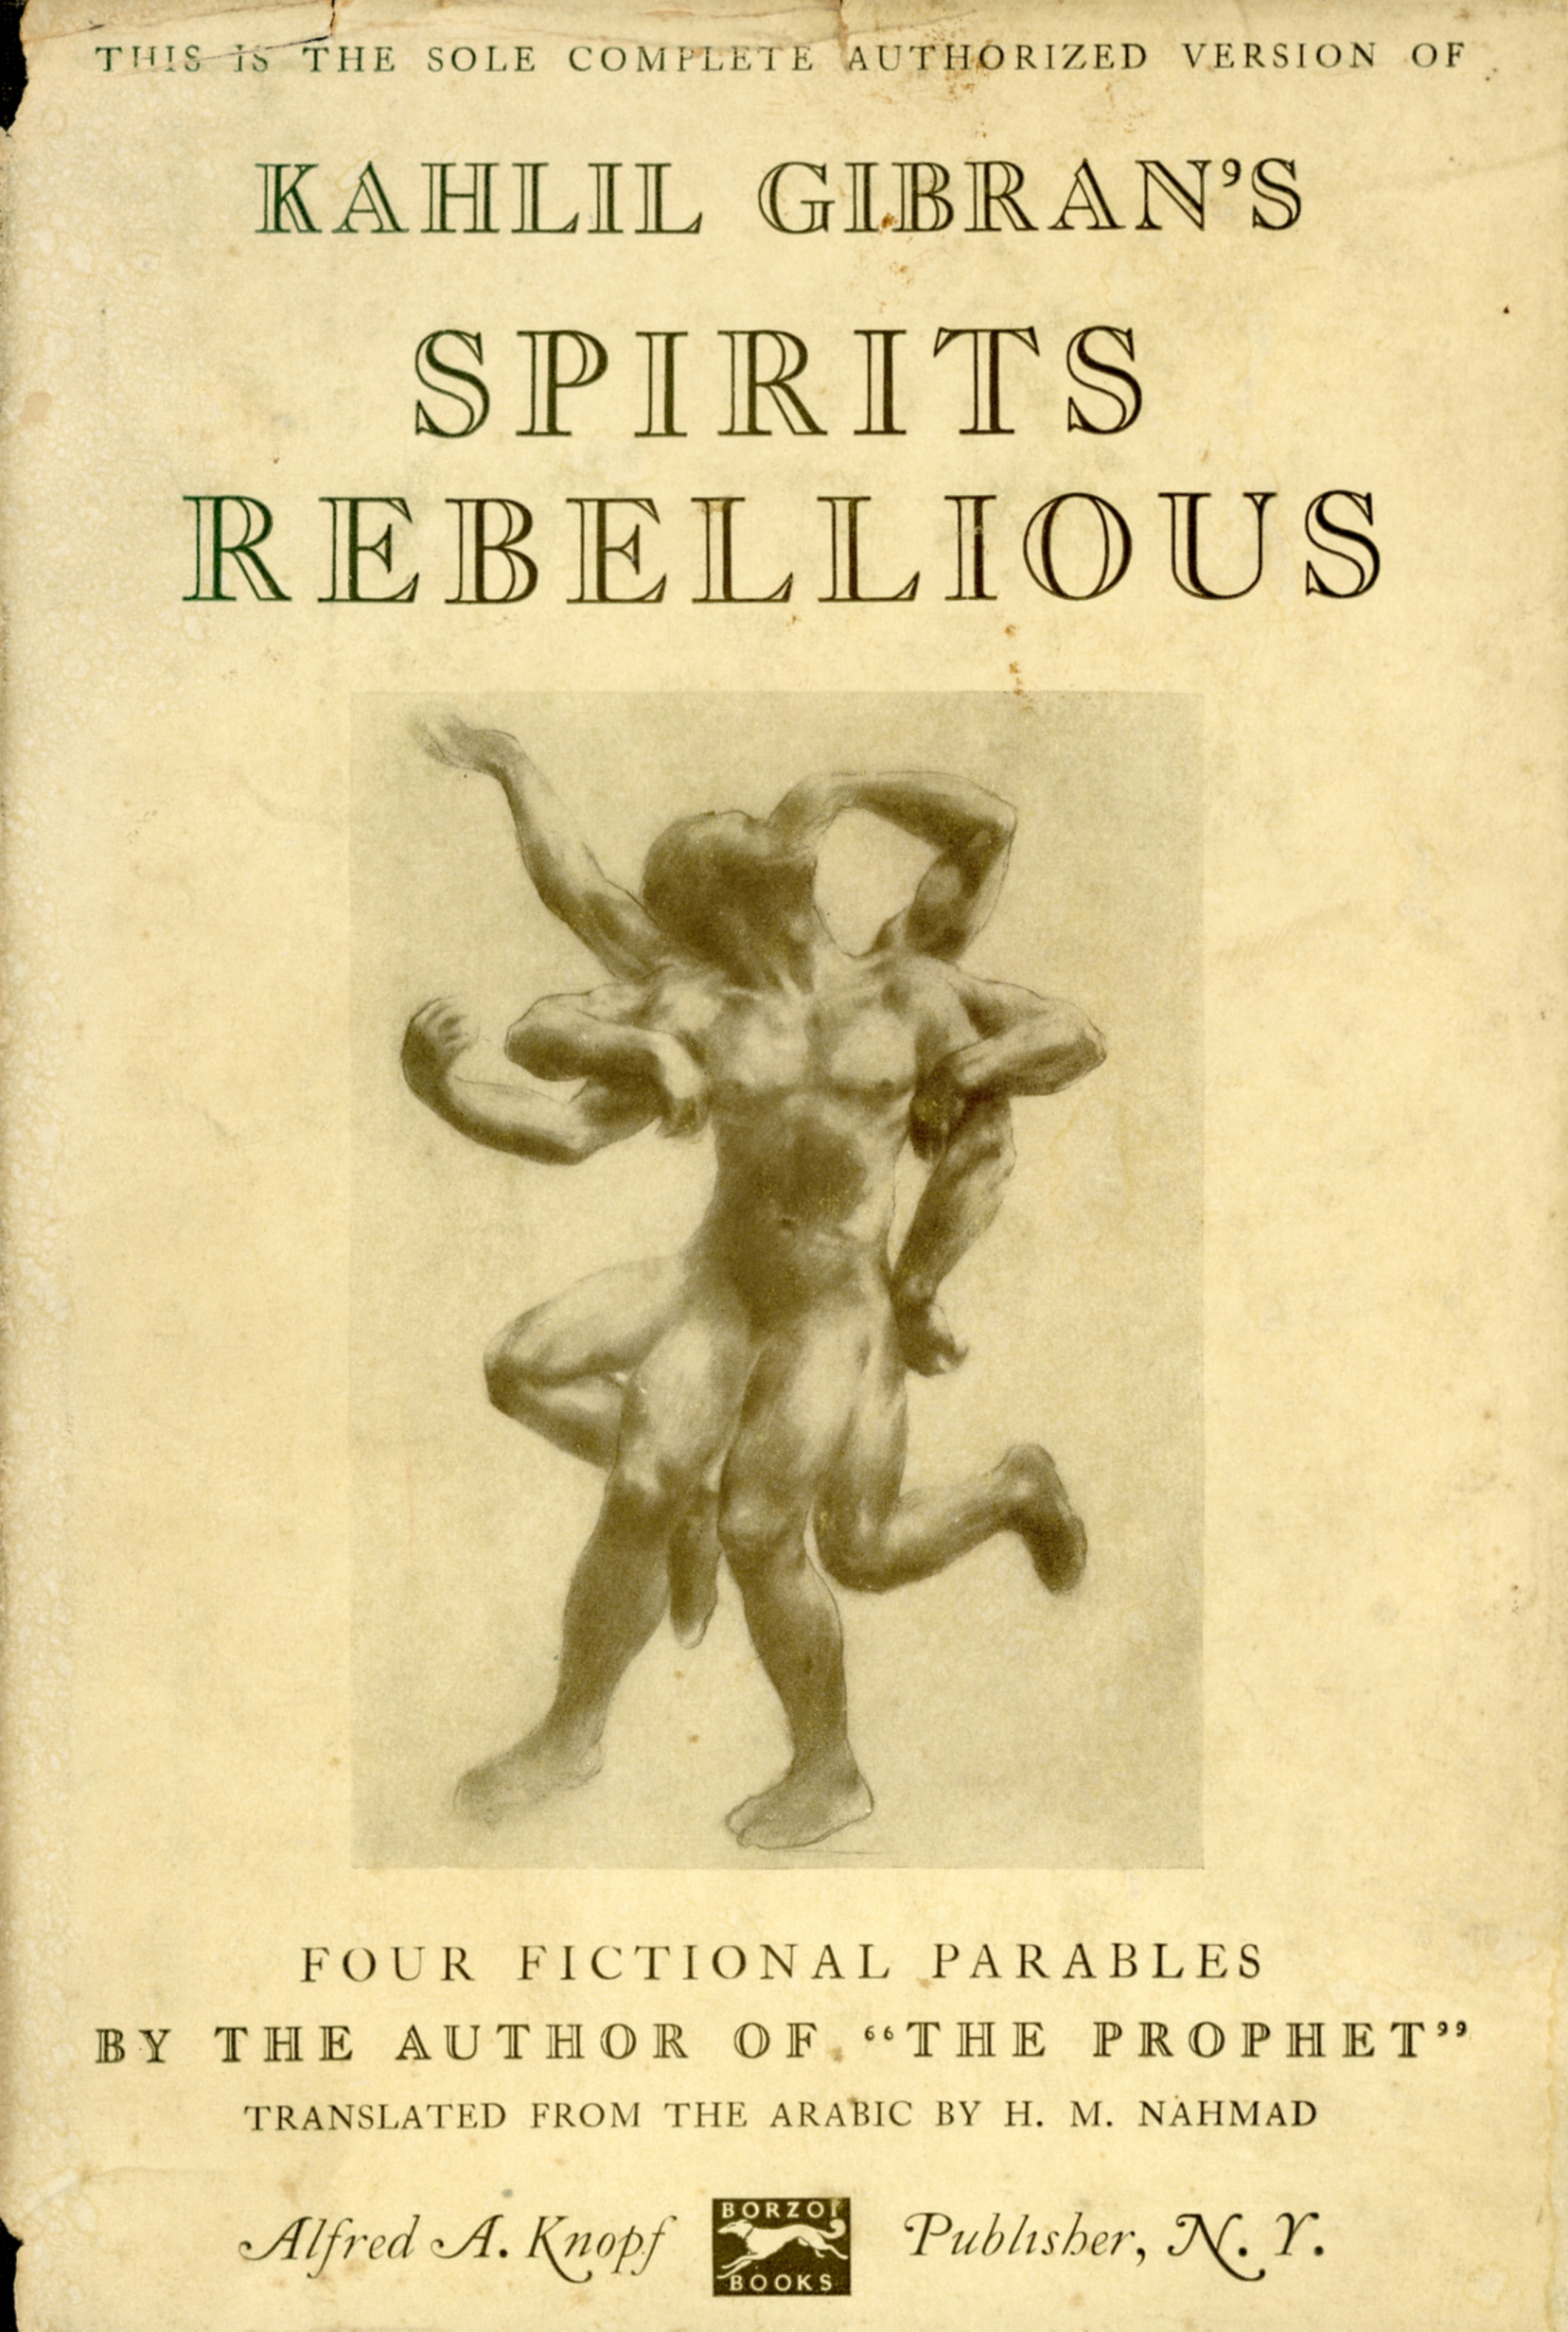 K. Gibran, Spirits Rebellious, Translated from the Arabic and with an Introduction by H.M. Nahmad, New York: Knopf, 1948.